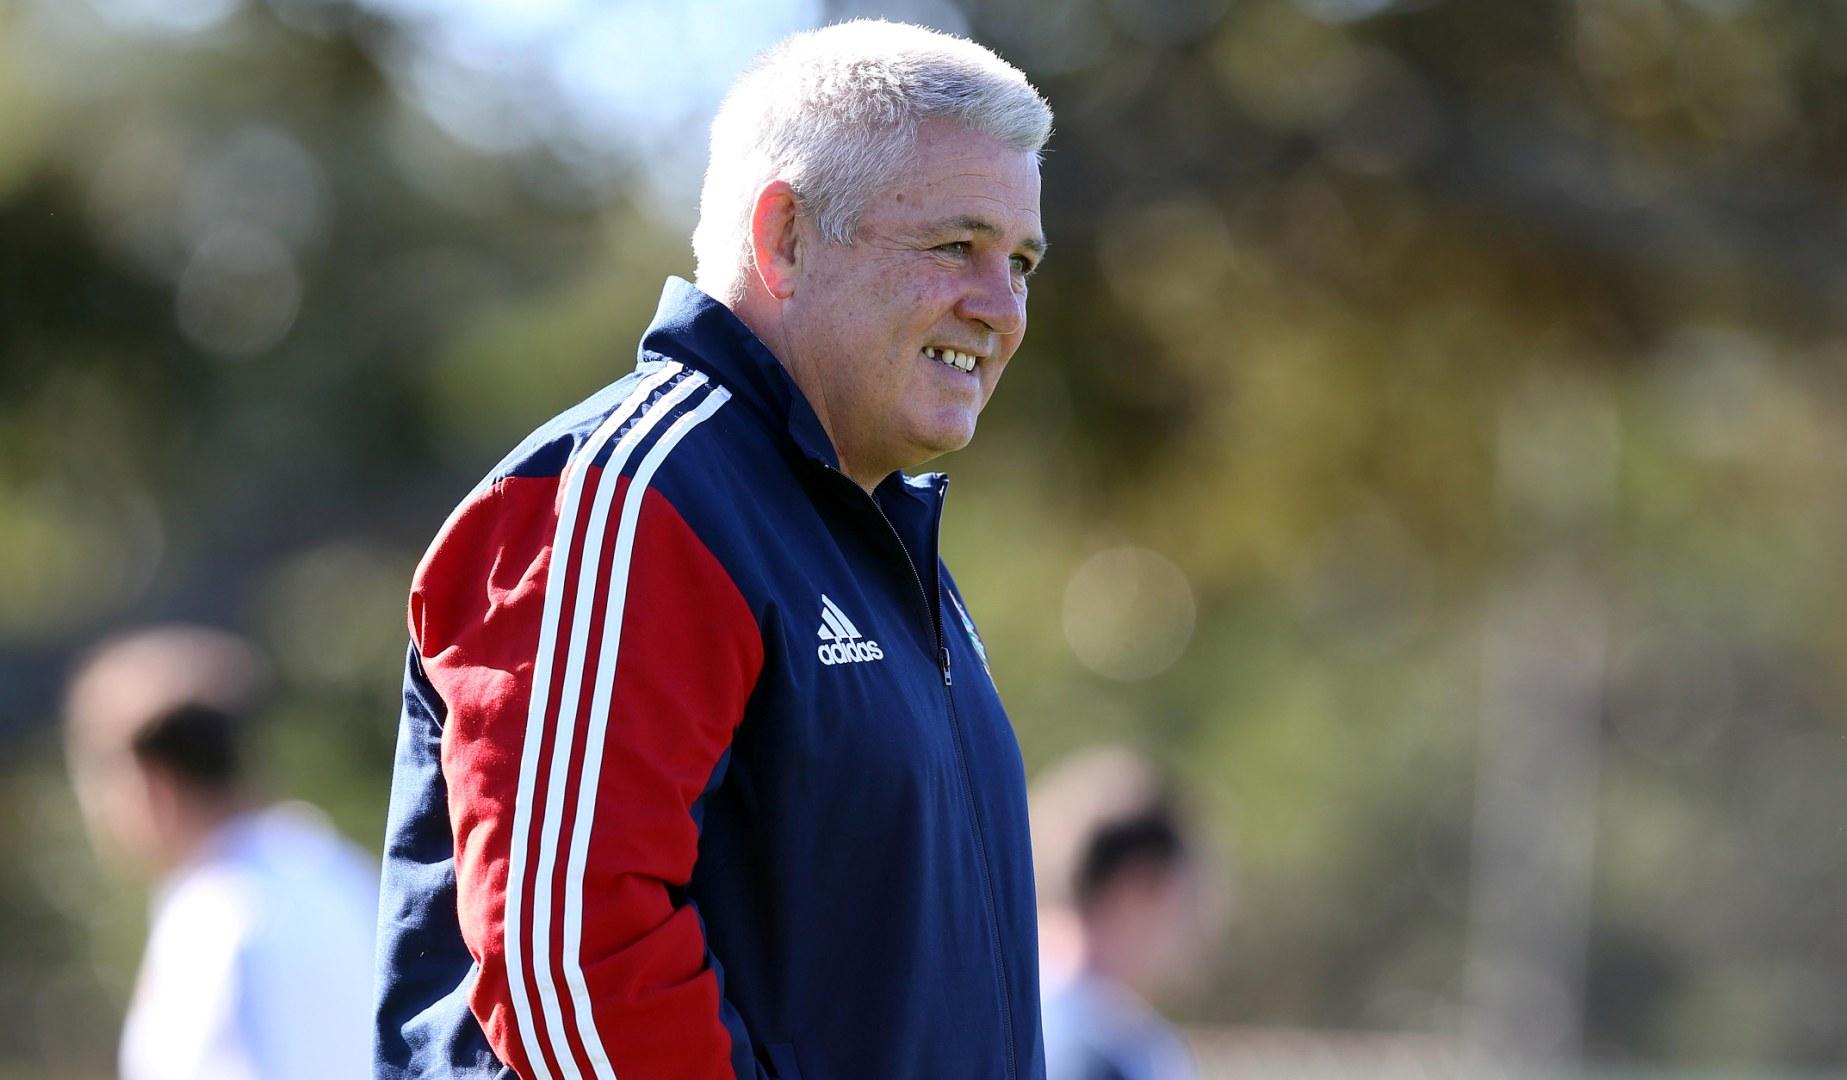 Gatland's first taste of the Lions